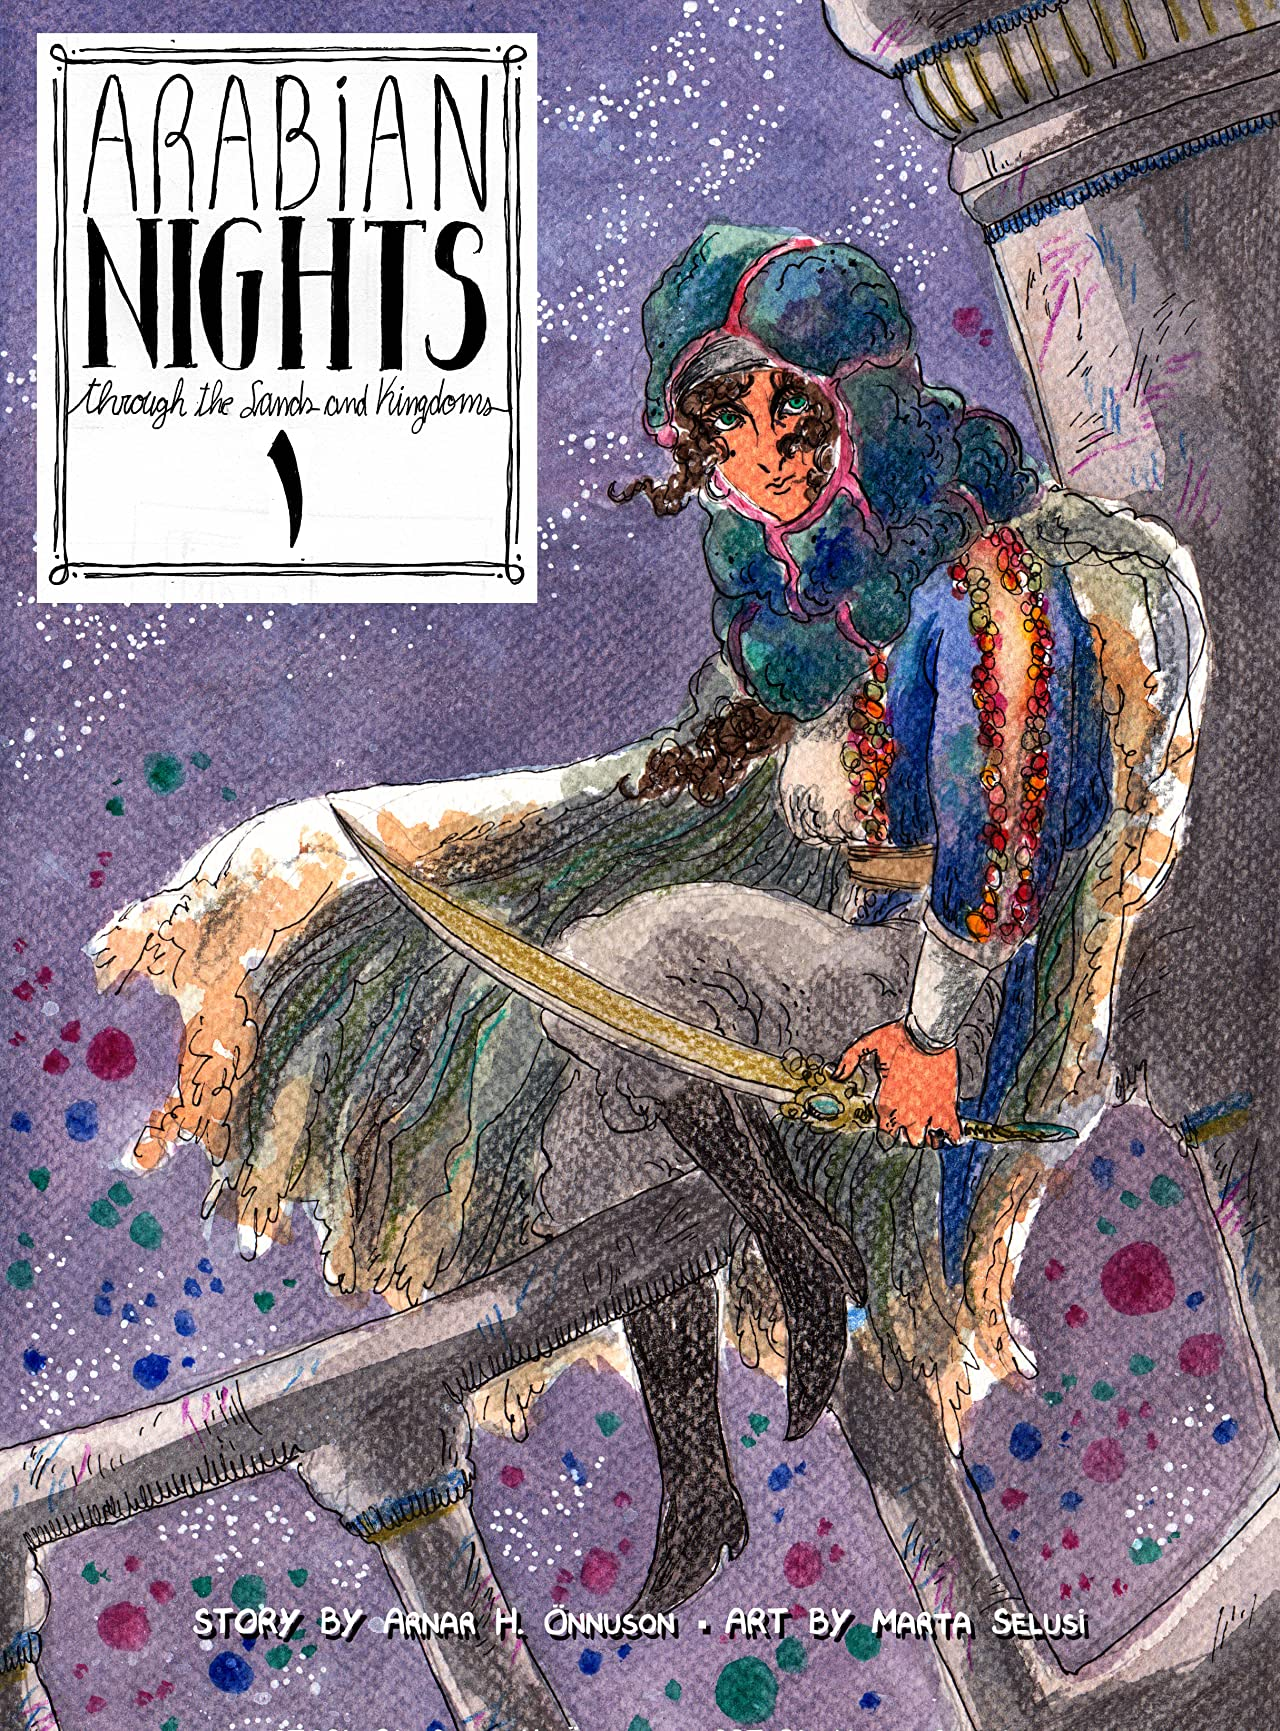 The Arabian Nights: Through the Sands and the Kingdoms #1